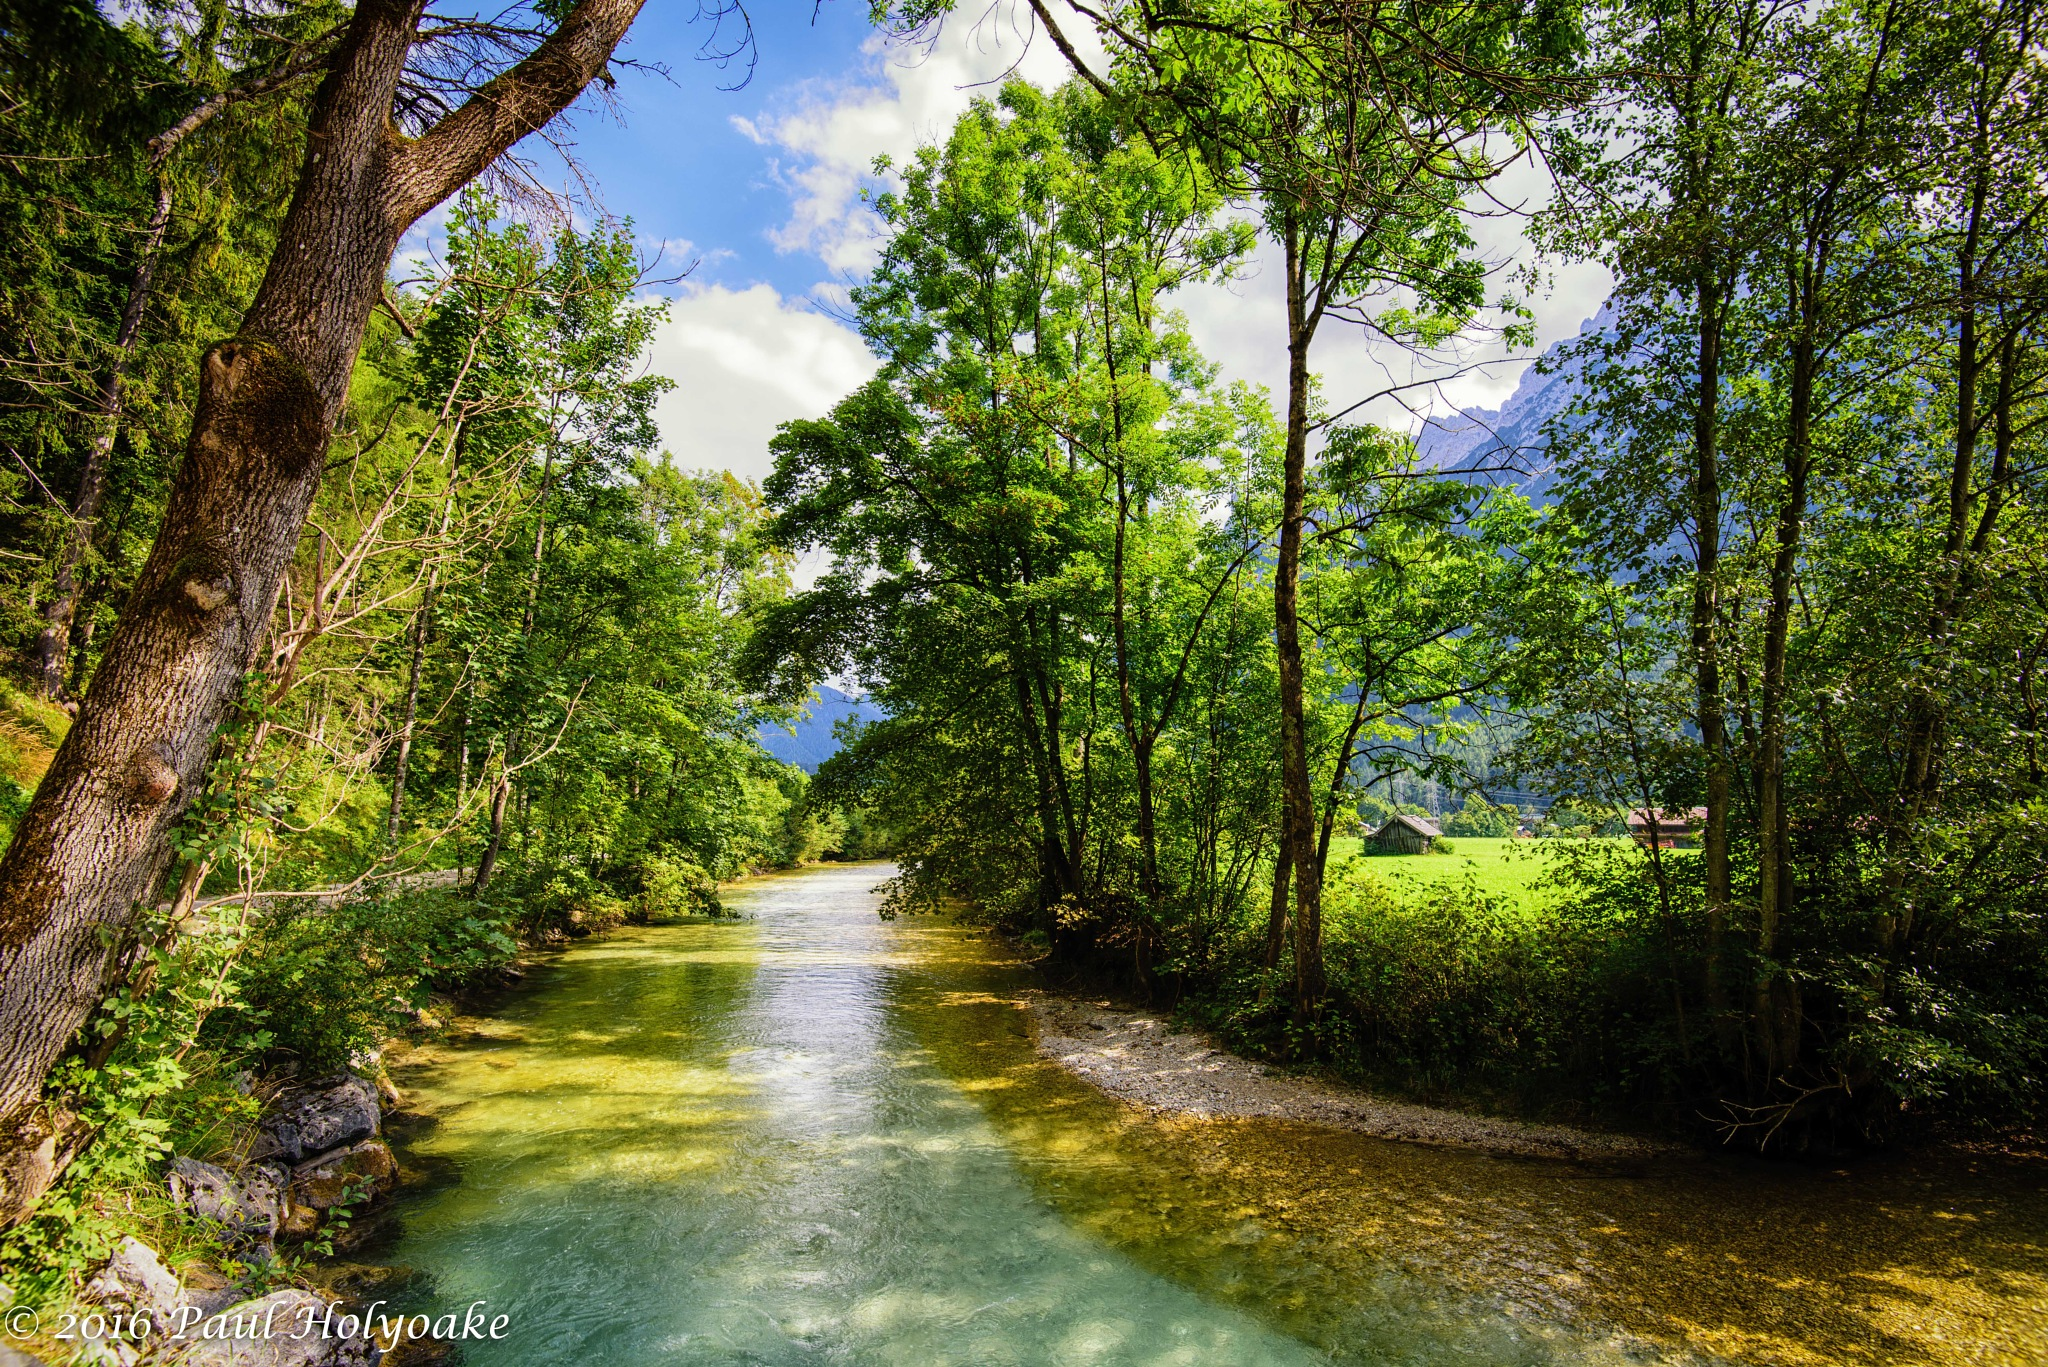 River Isar by Photon